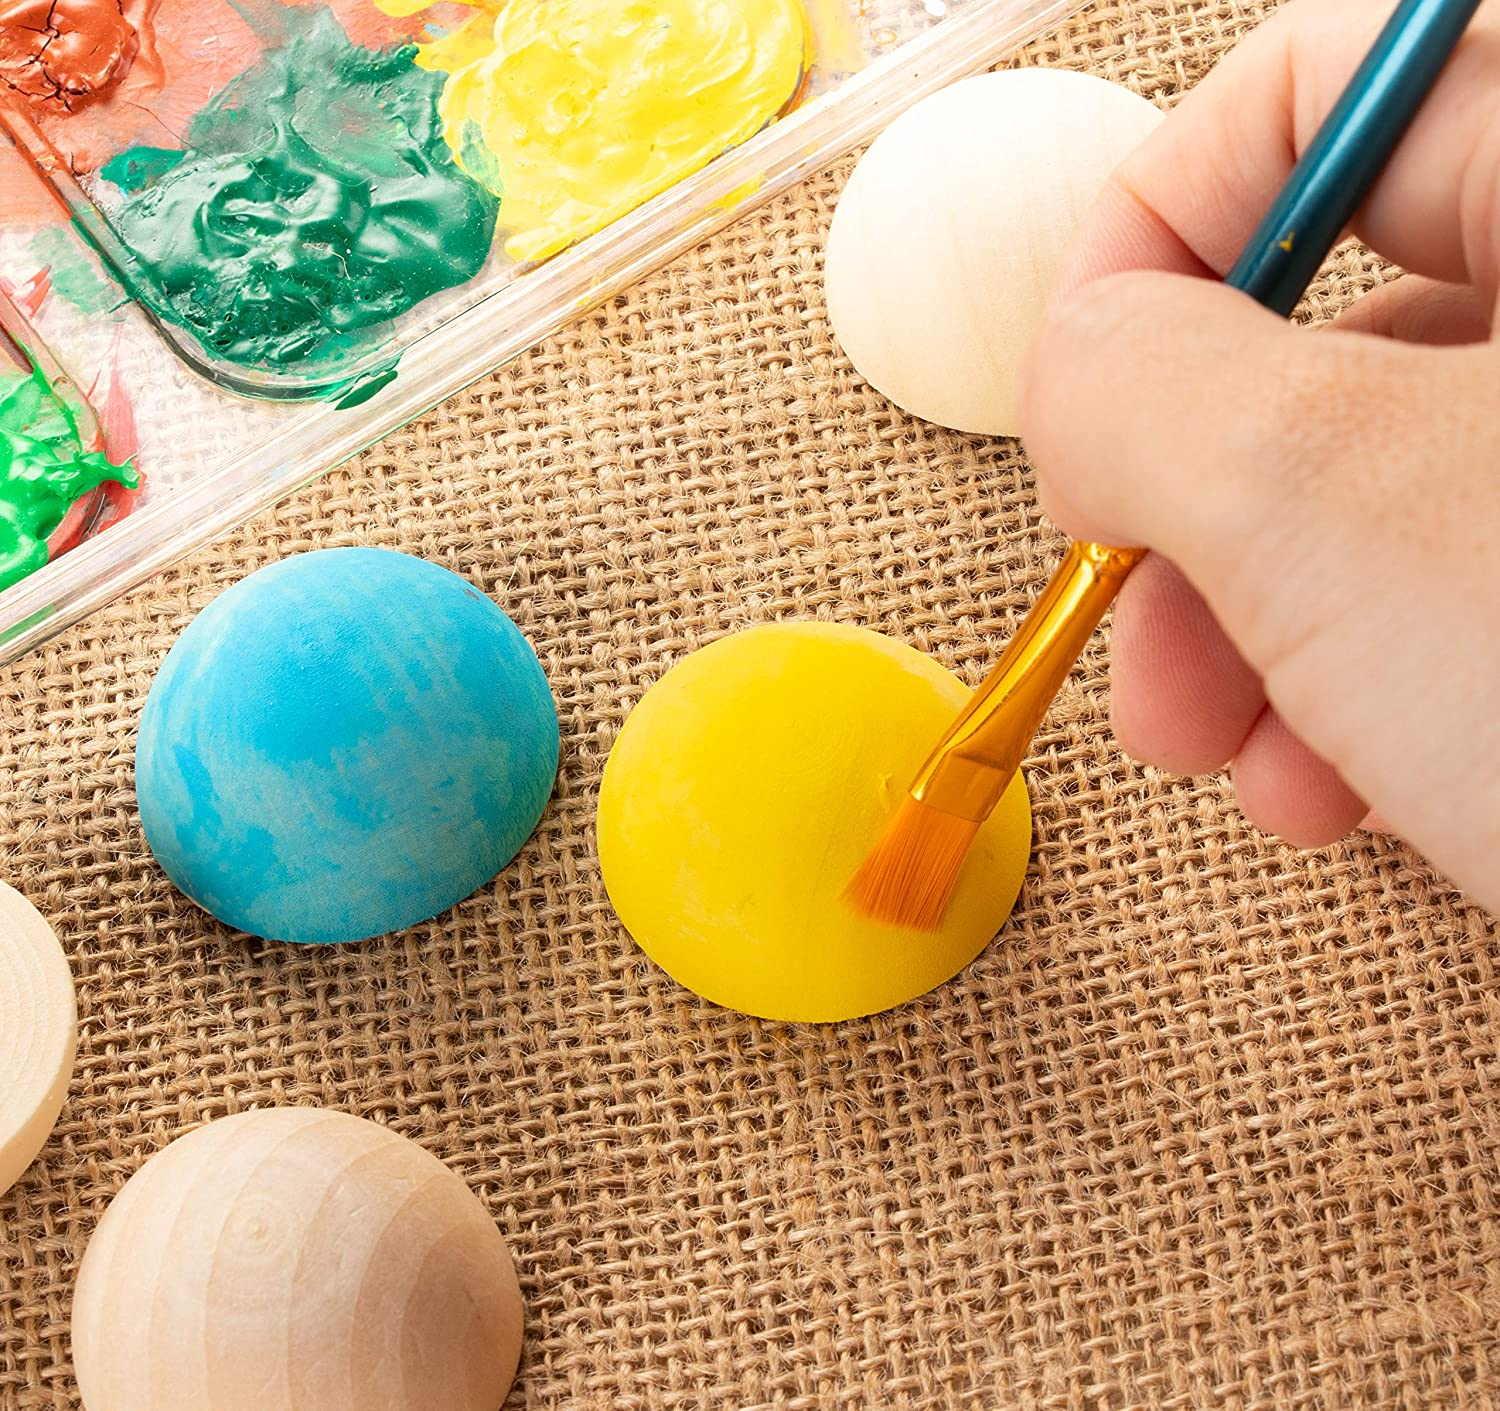 30-Pack Unfinished Half Wooden Balls Half Craft Balls for DIY Projects Split Wood Balls 1.5 Inches Diameter Mini Hemisphere Kids Arts and Craft Supplies